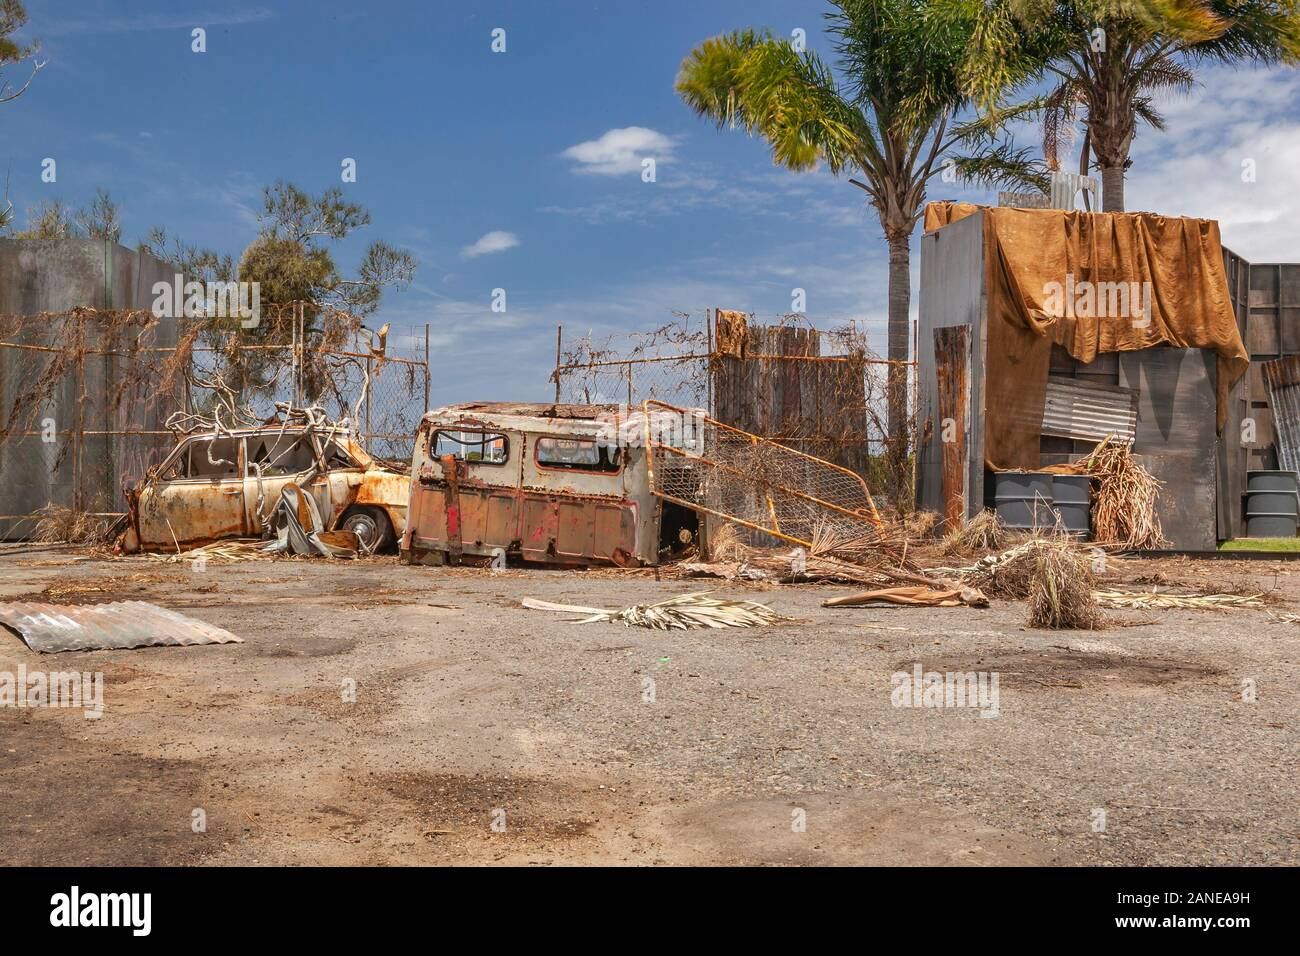 Junk Yard Australia High Resolution Stock Photography And Images Alamy